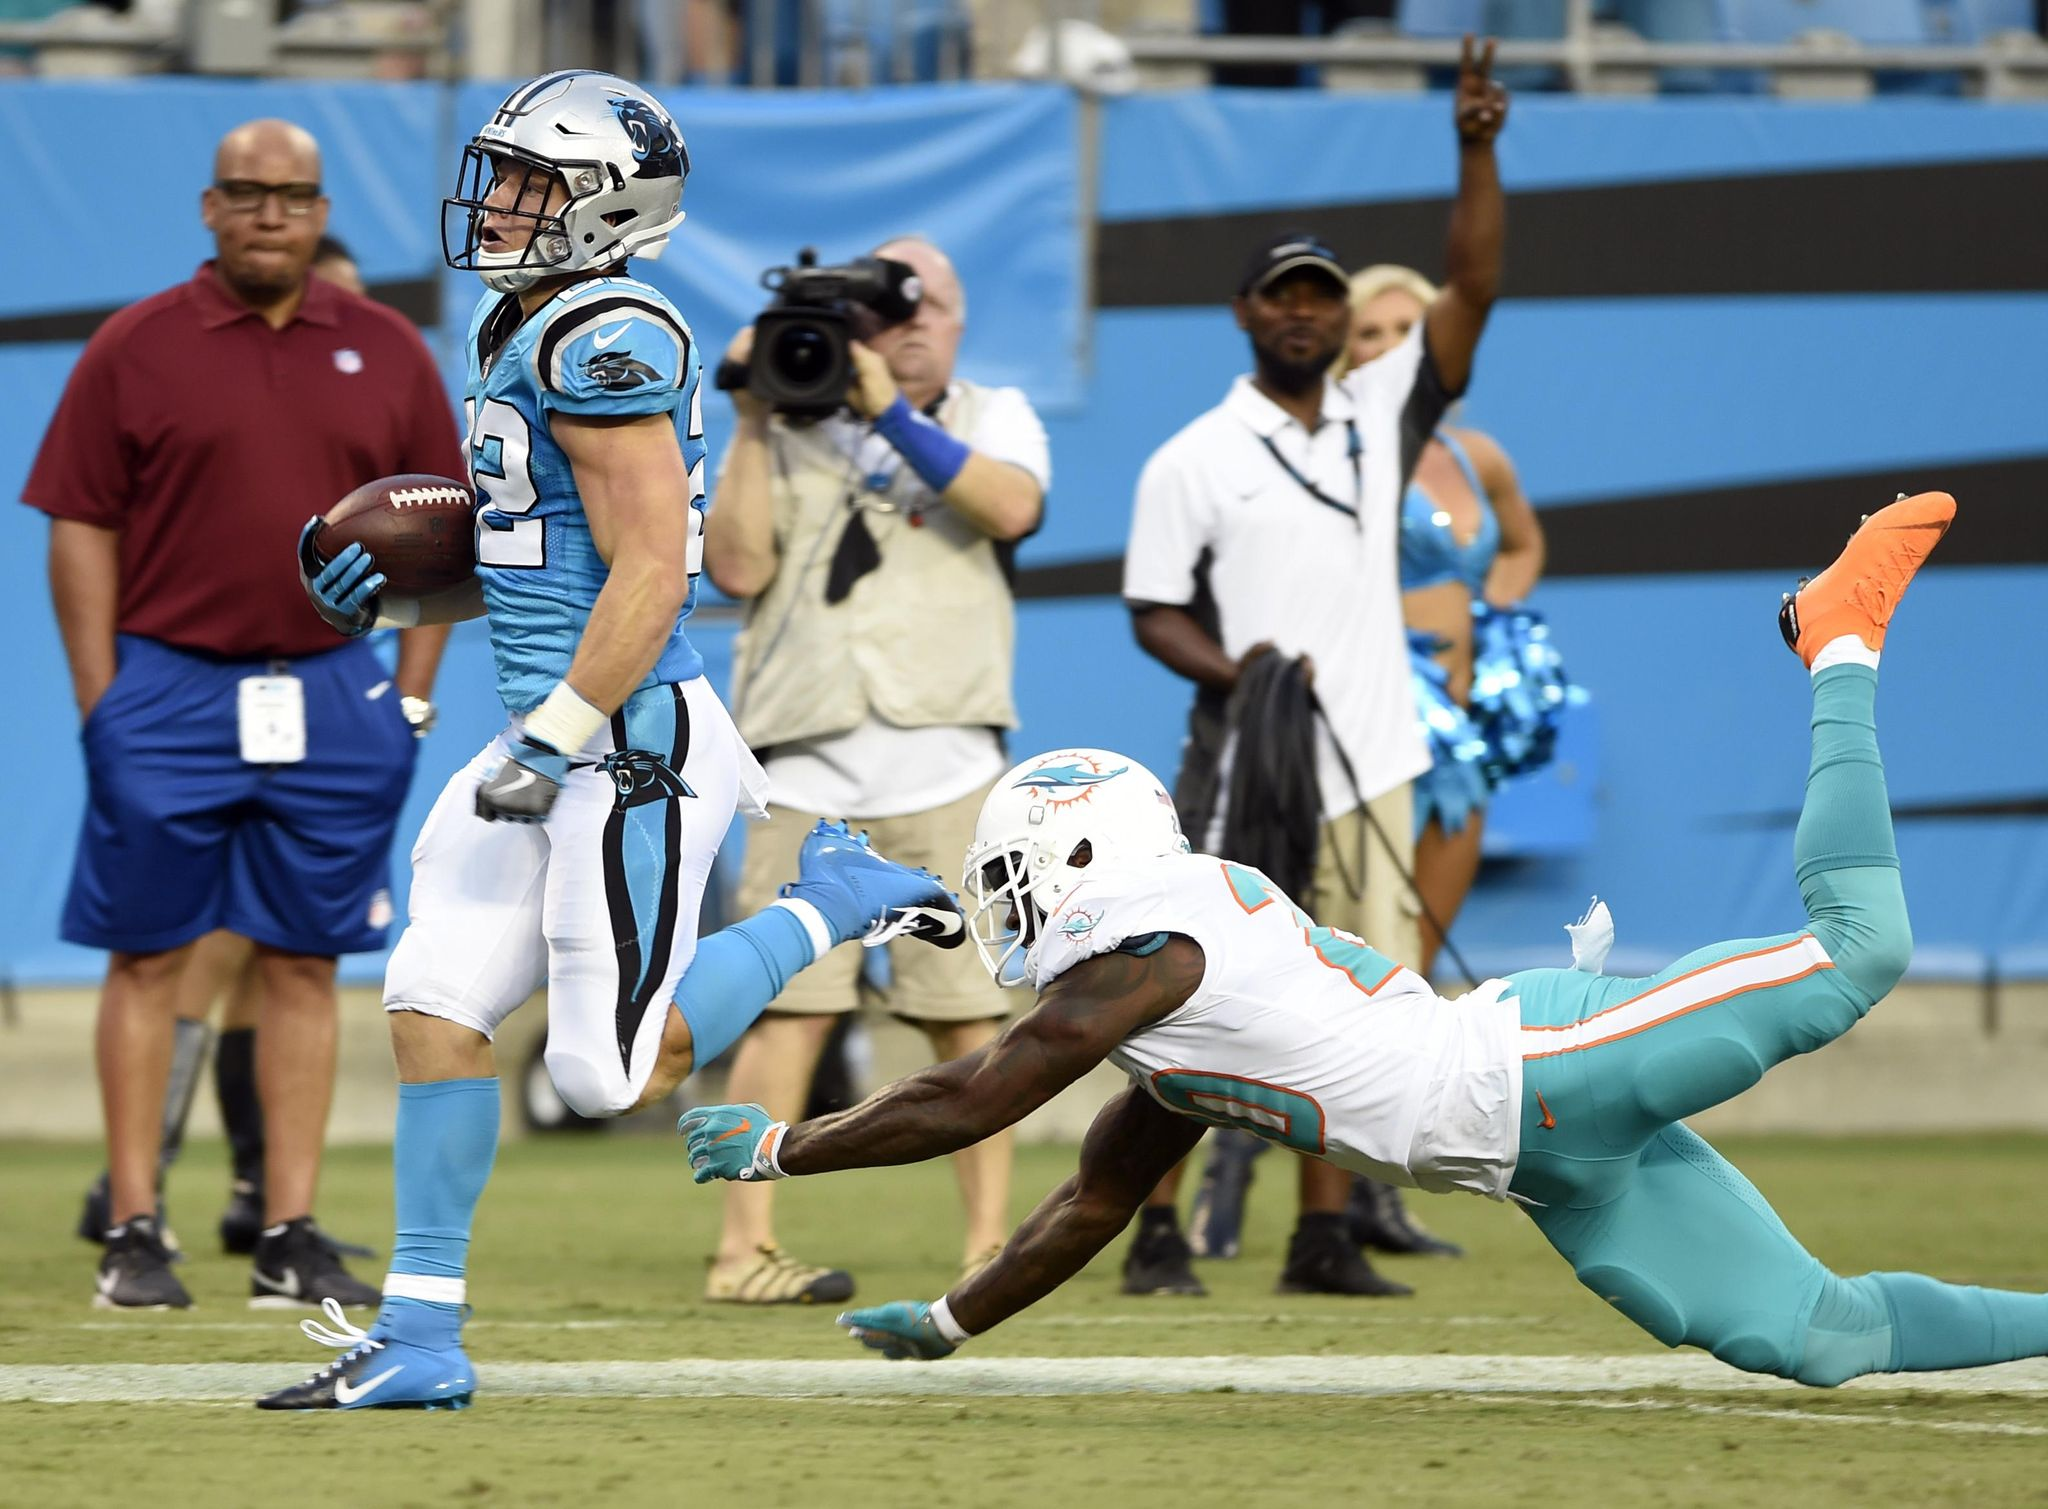 Dolphins_panthers_football_90899_s2048x1509